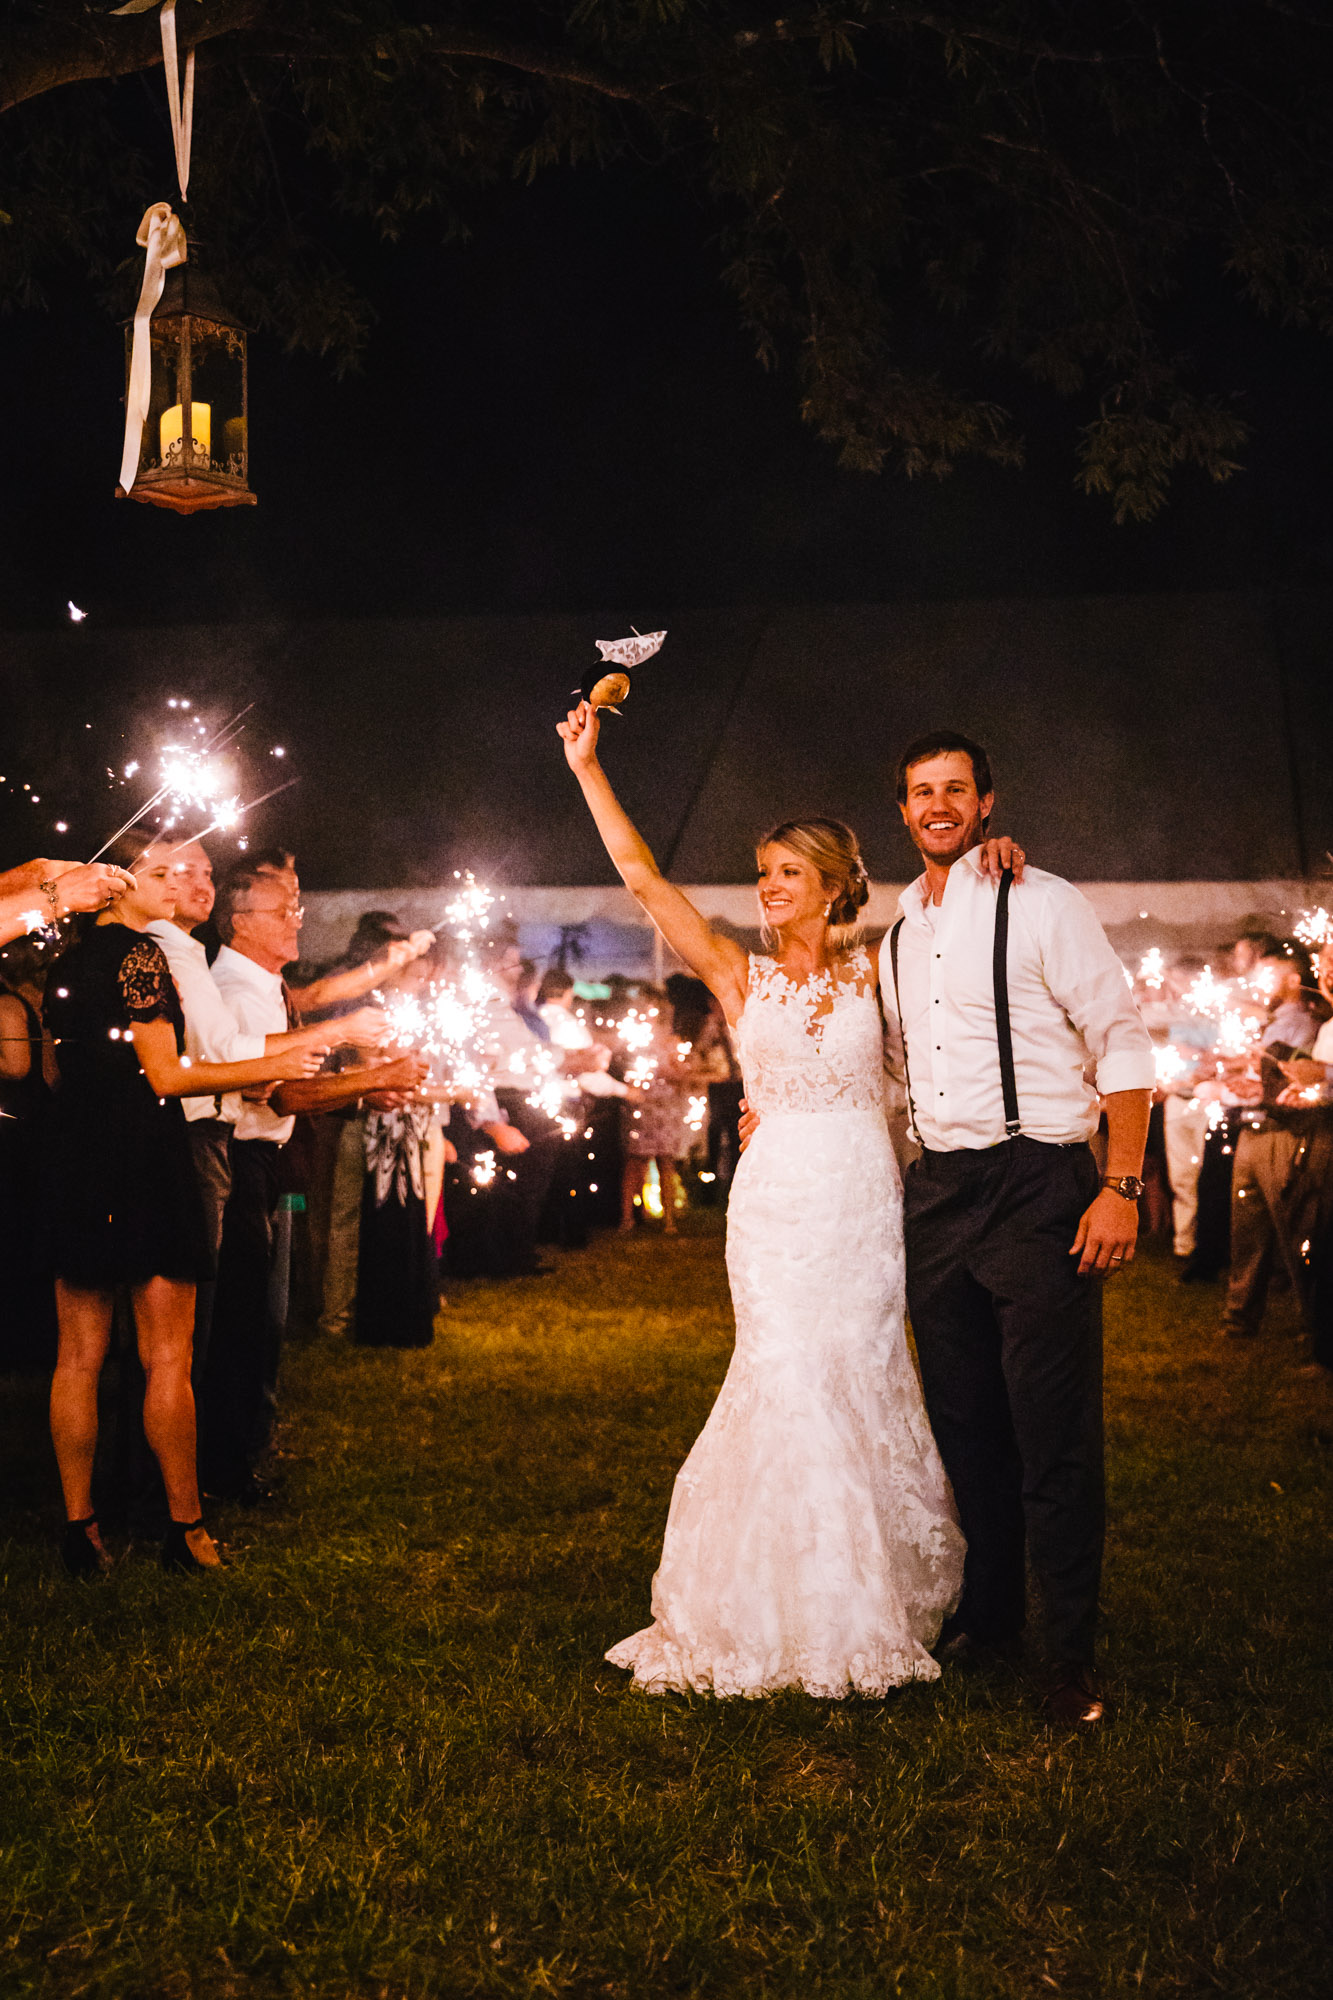 Waynesville, NC Wedding Photography | Sparkler Exit